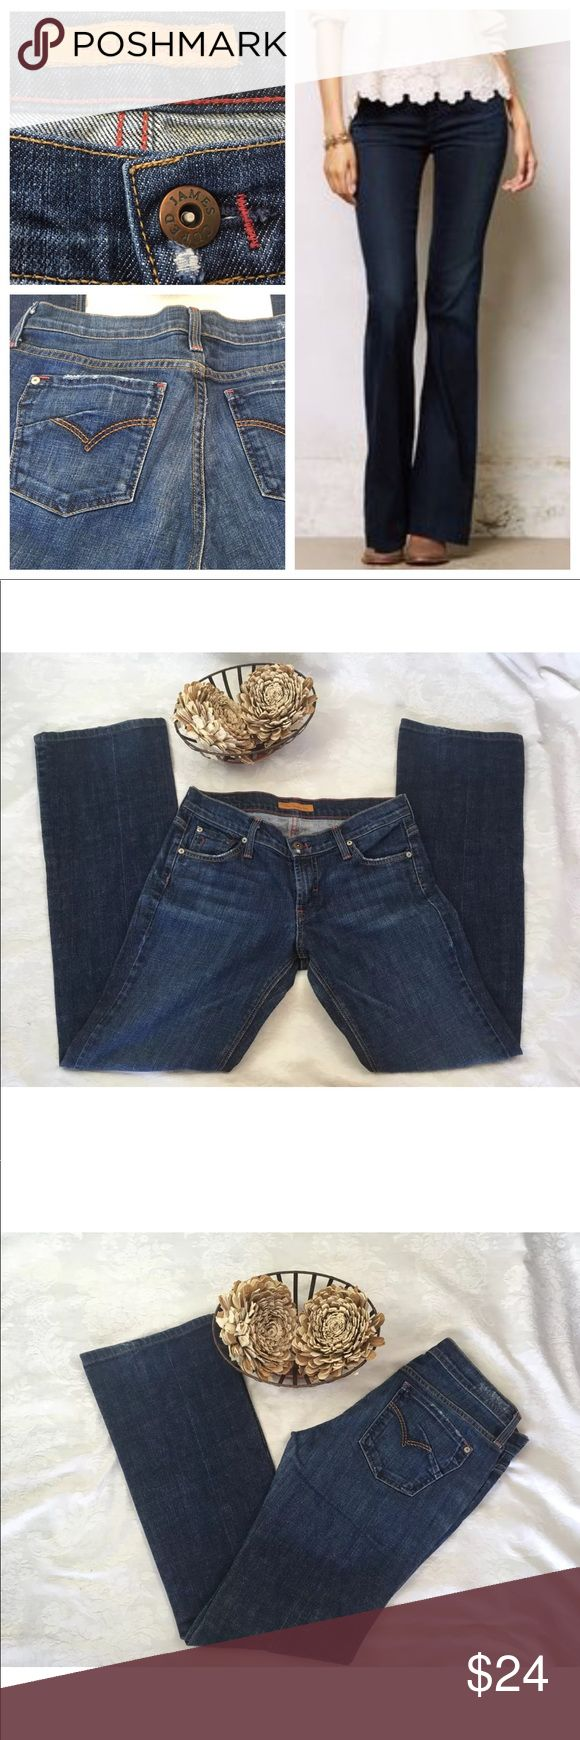 """James cured by Sean women's mid rise bootcut jeans James cured by Sean women's mid rise bootcut jeans Dark rinse super cute extremely well made quality jeans   Size 28  Rise 7""""  Inseam 24""""  Stock BB. B19 James Cured by Sean Jeans Straight Leg"""